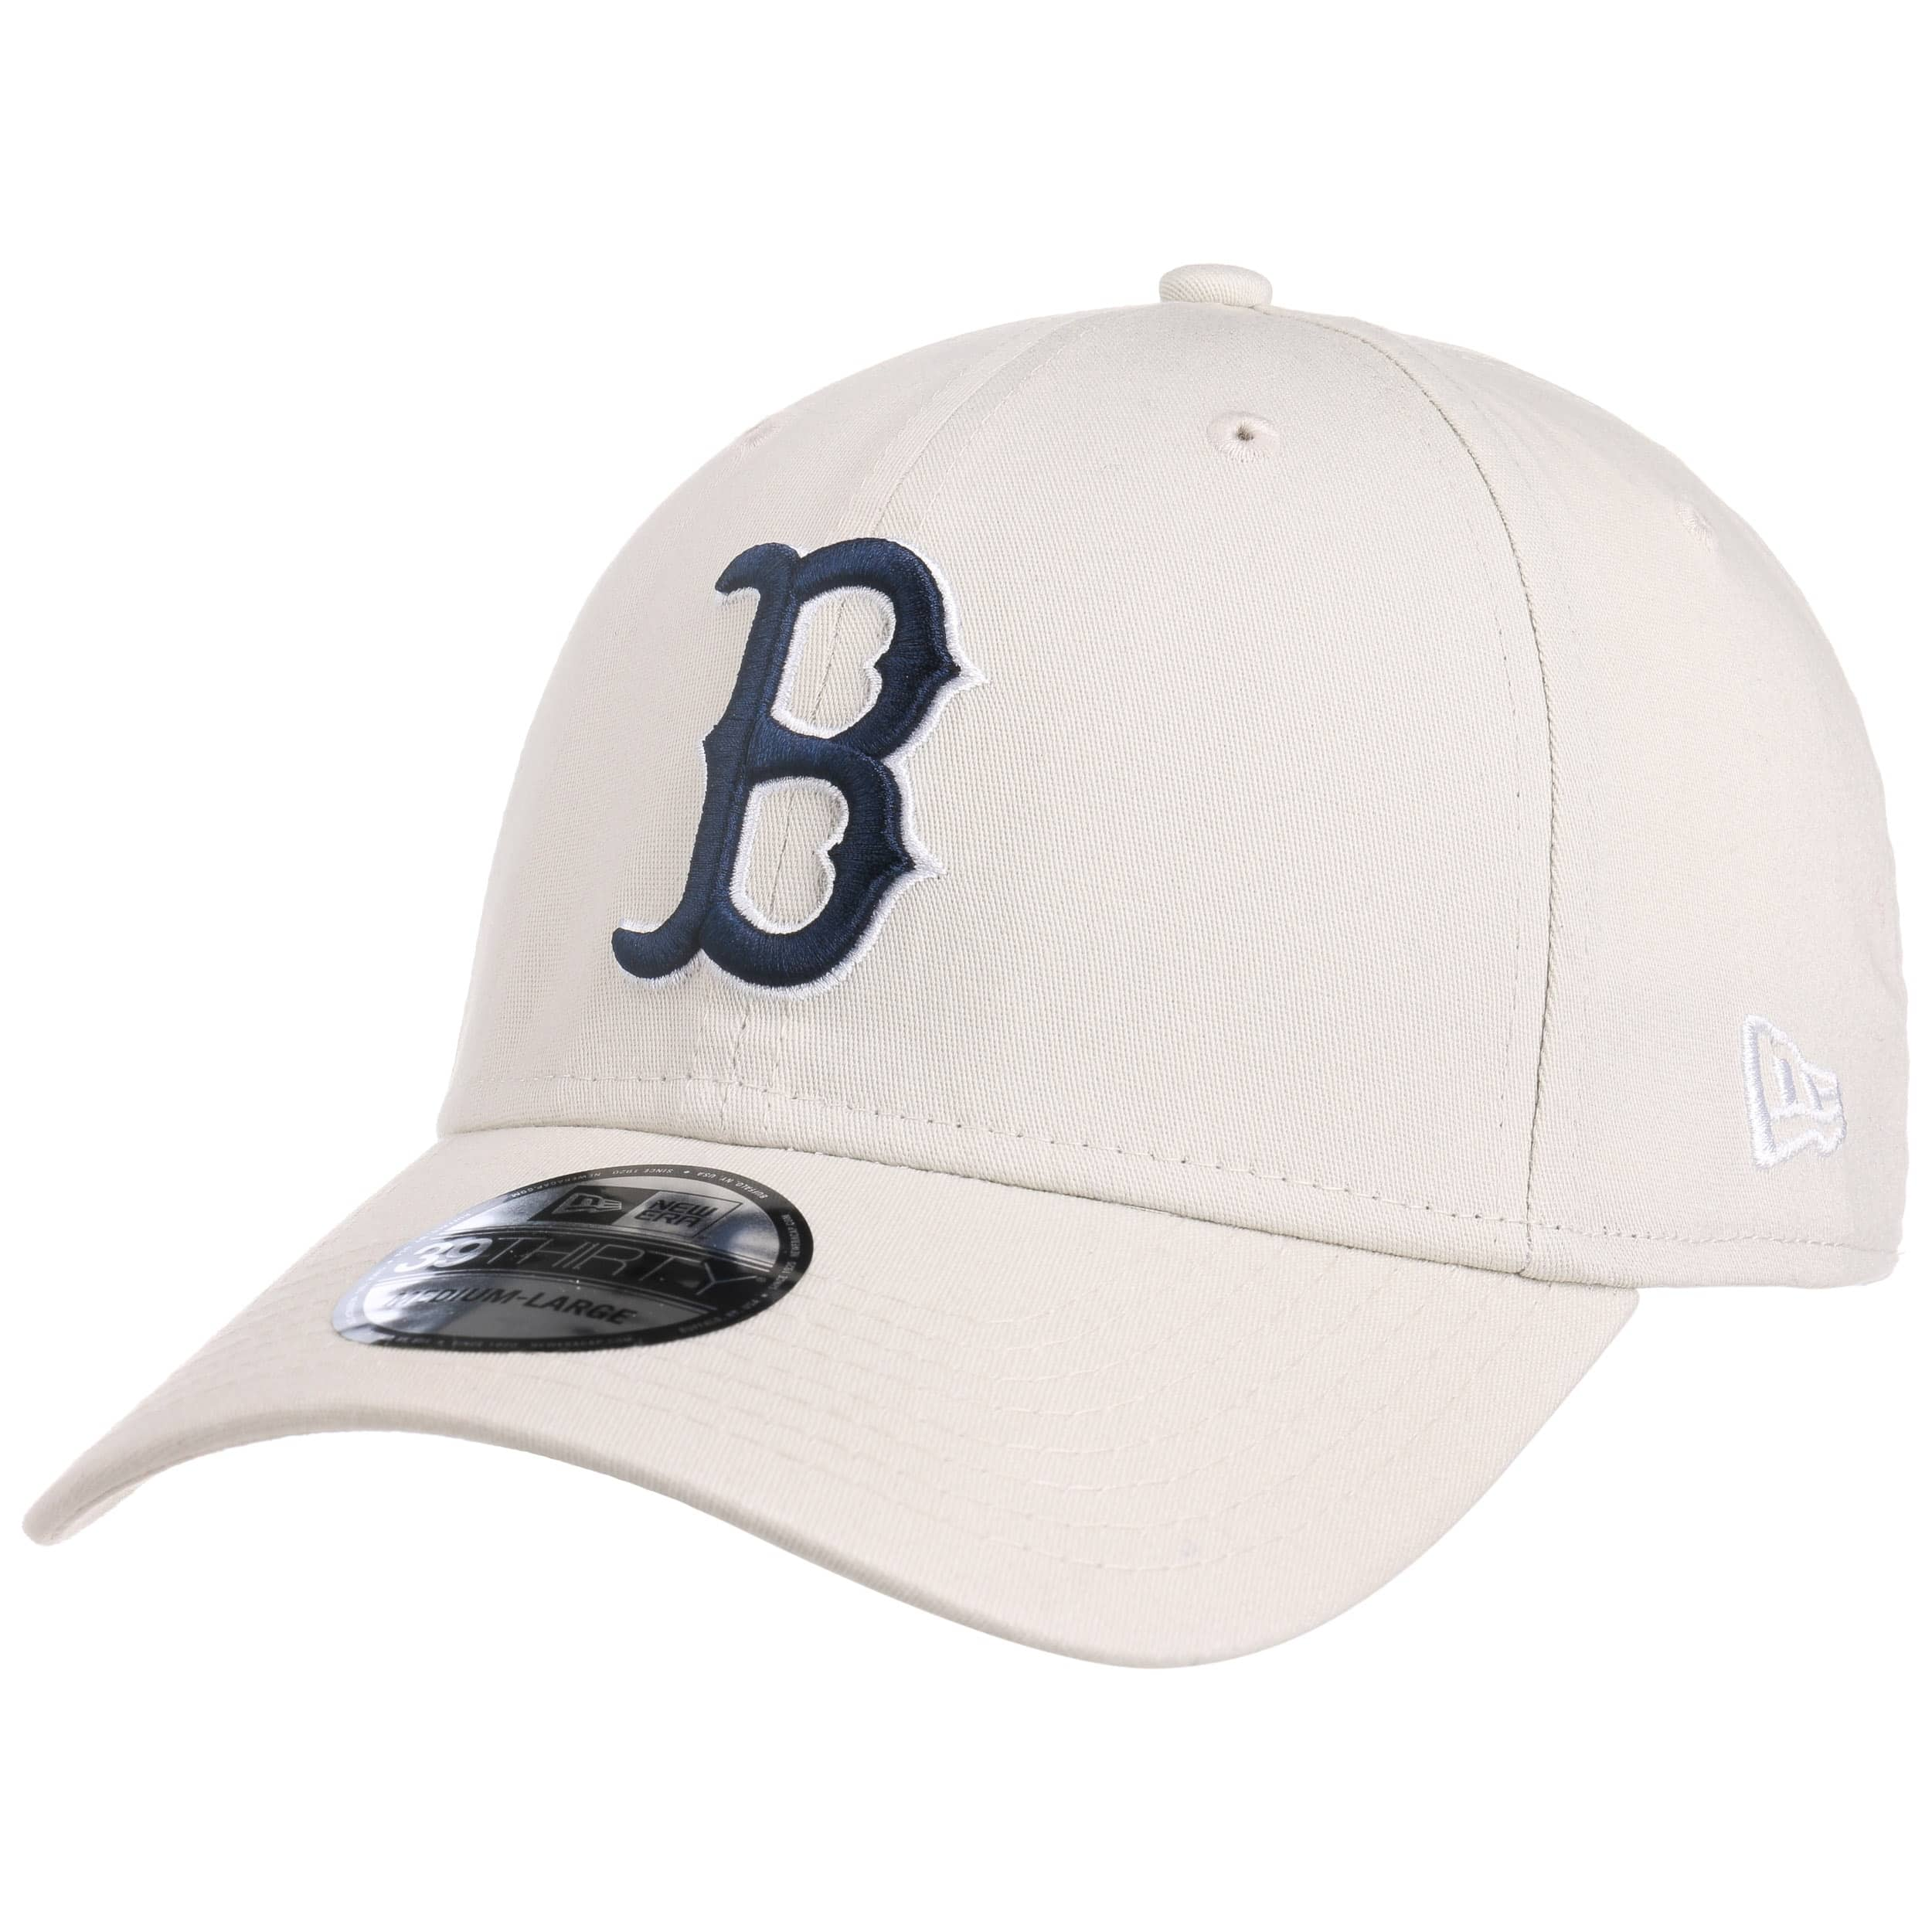 ... 39Thirty Red Sox Cap by New Era - oatmeal 6 772d75bfa49